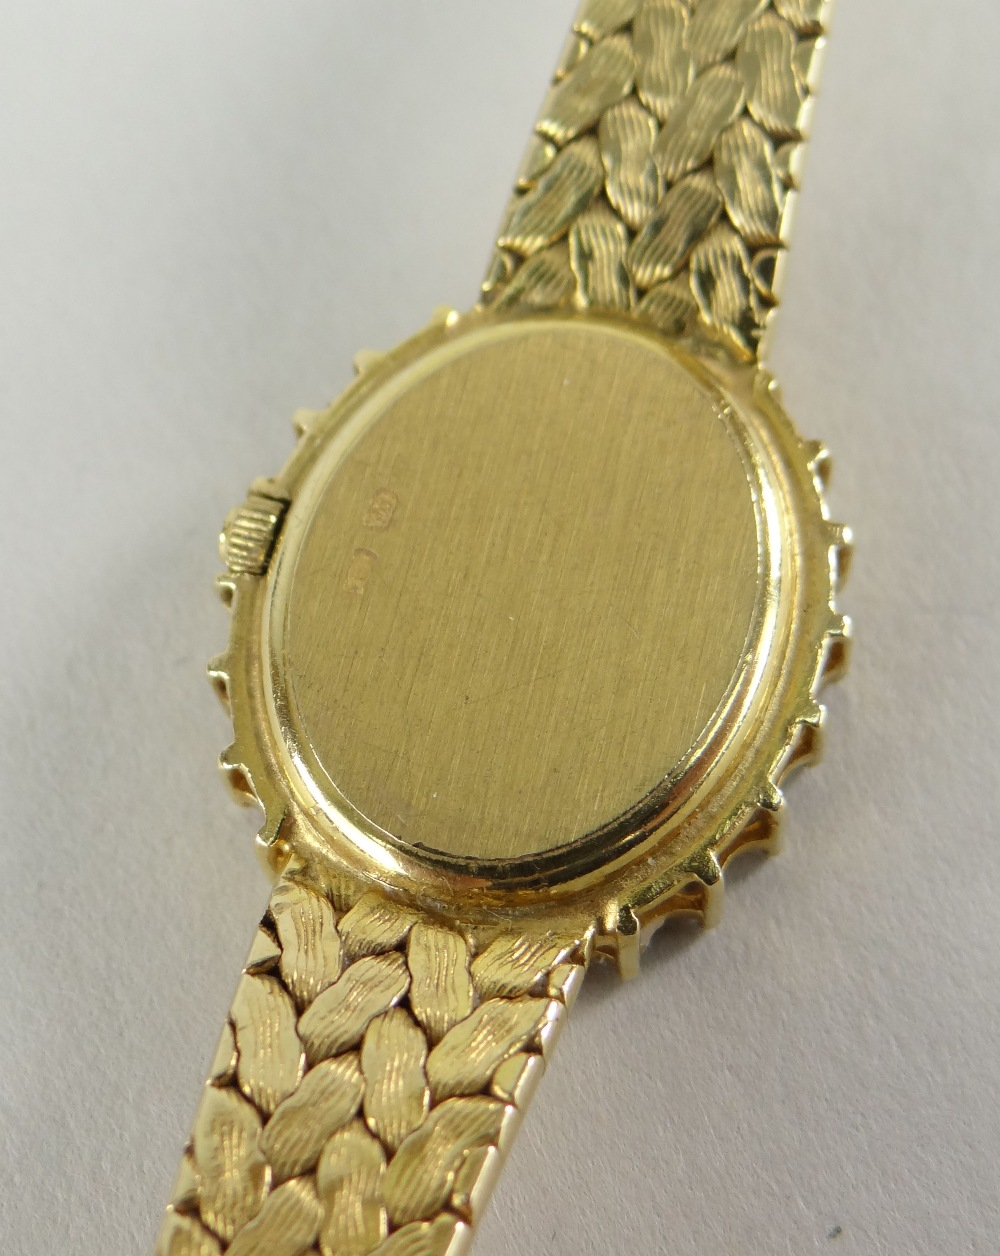 9CT YELLOW GOLD LADIES BUECHE-GIROD COCKTAIL WATCH, the oval dial surrounded by twenty-two - Image 4 of 4